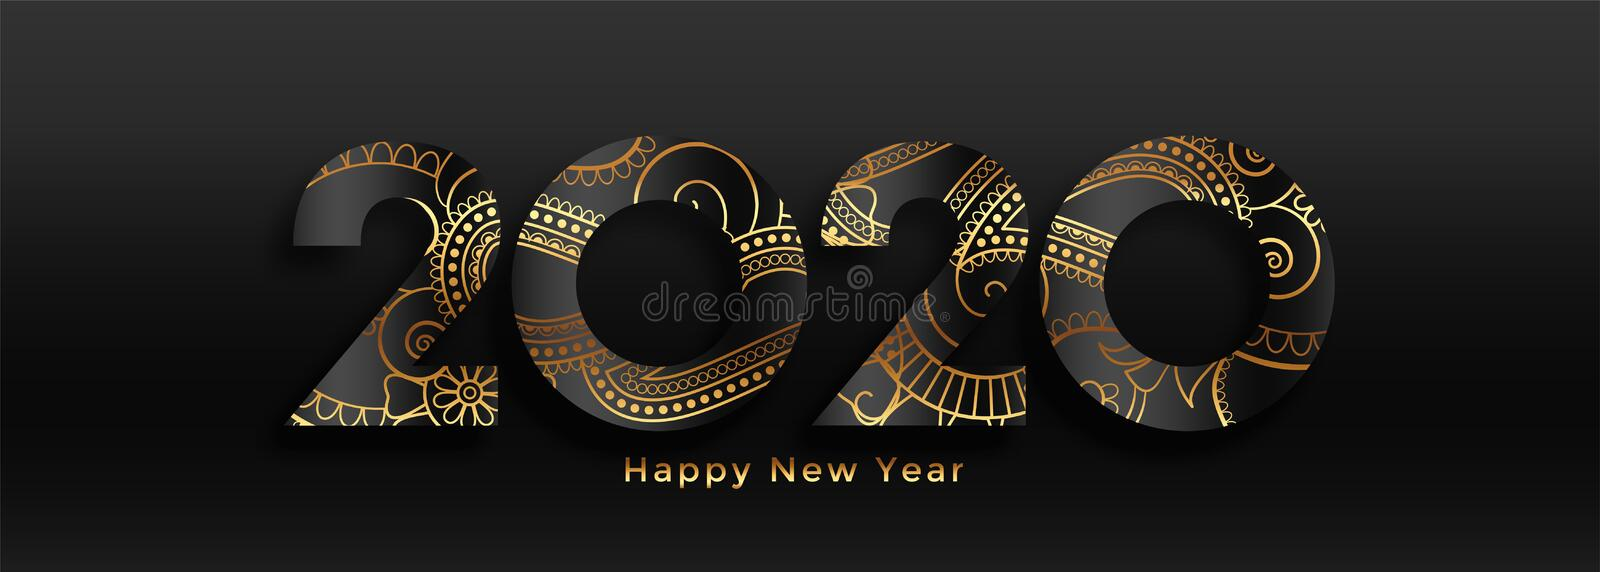 Luxury 2020 happy new year black and gold banner design stock illustration